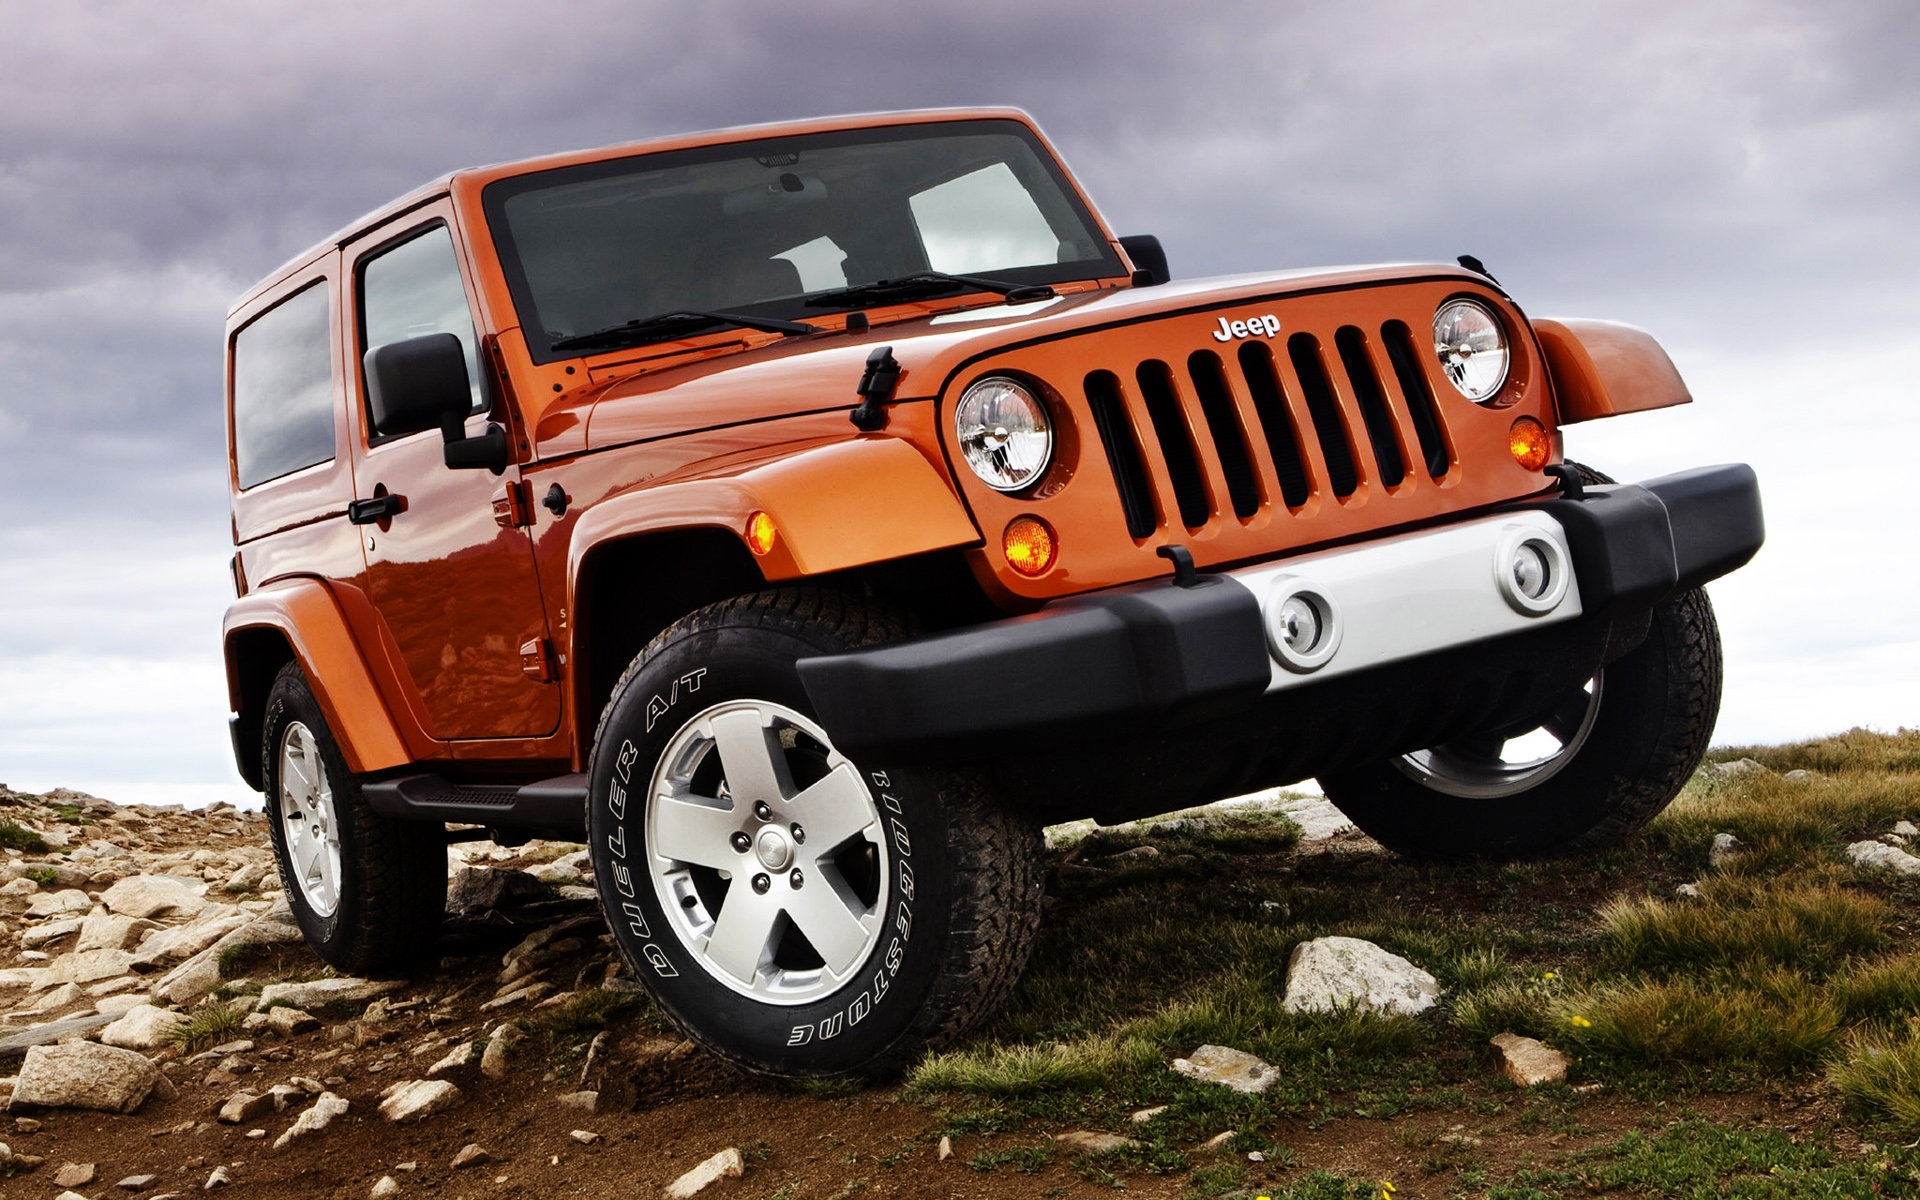 Jeep Car Images Hd: Jeep Full HD Wallpaper And Background Image